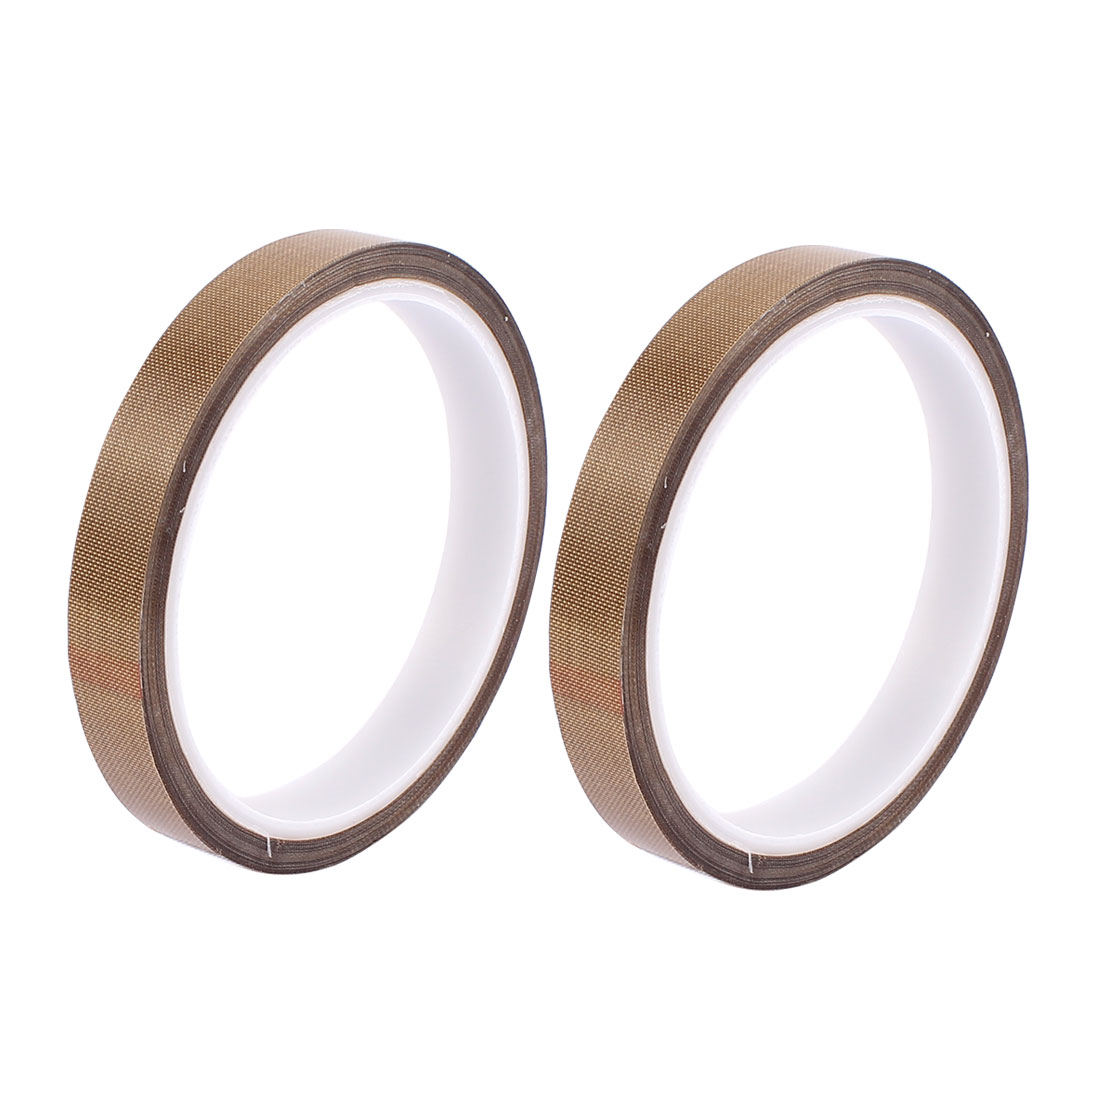 2pcs 12mm Width 10M Length Nonstick High Temperature PTFE Adhesive Tape